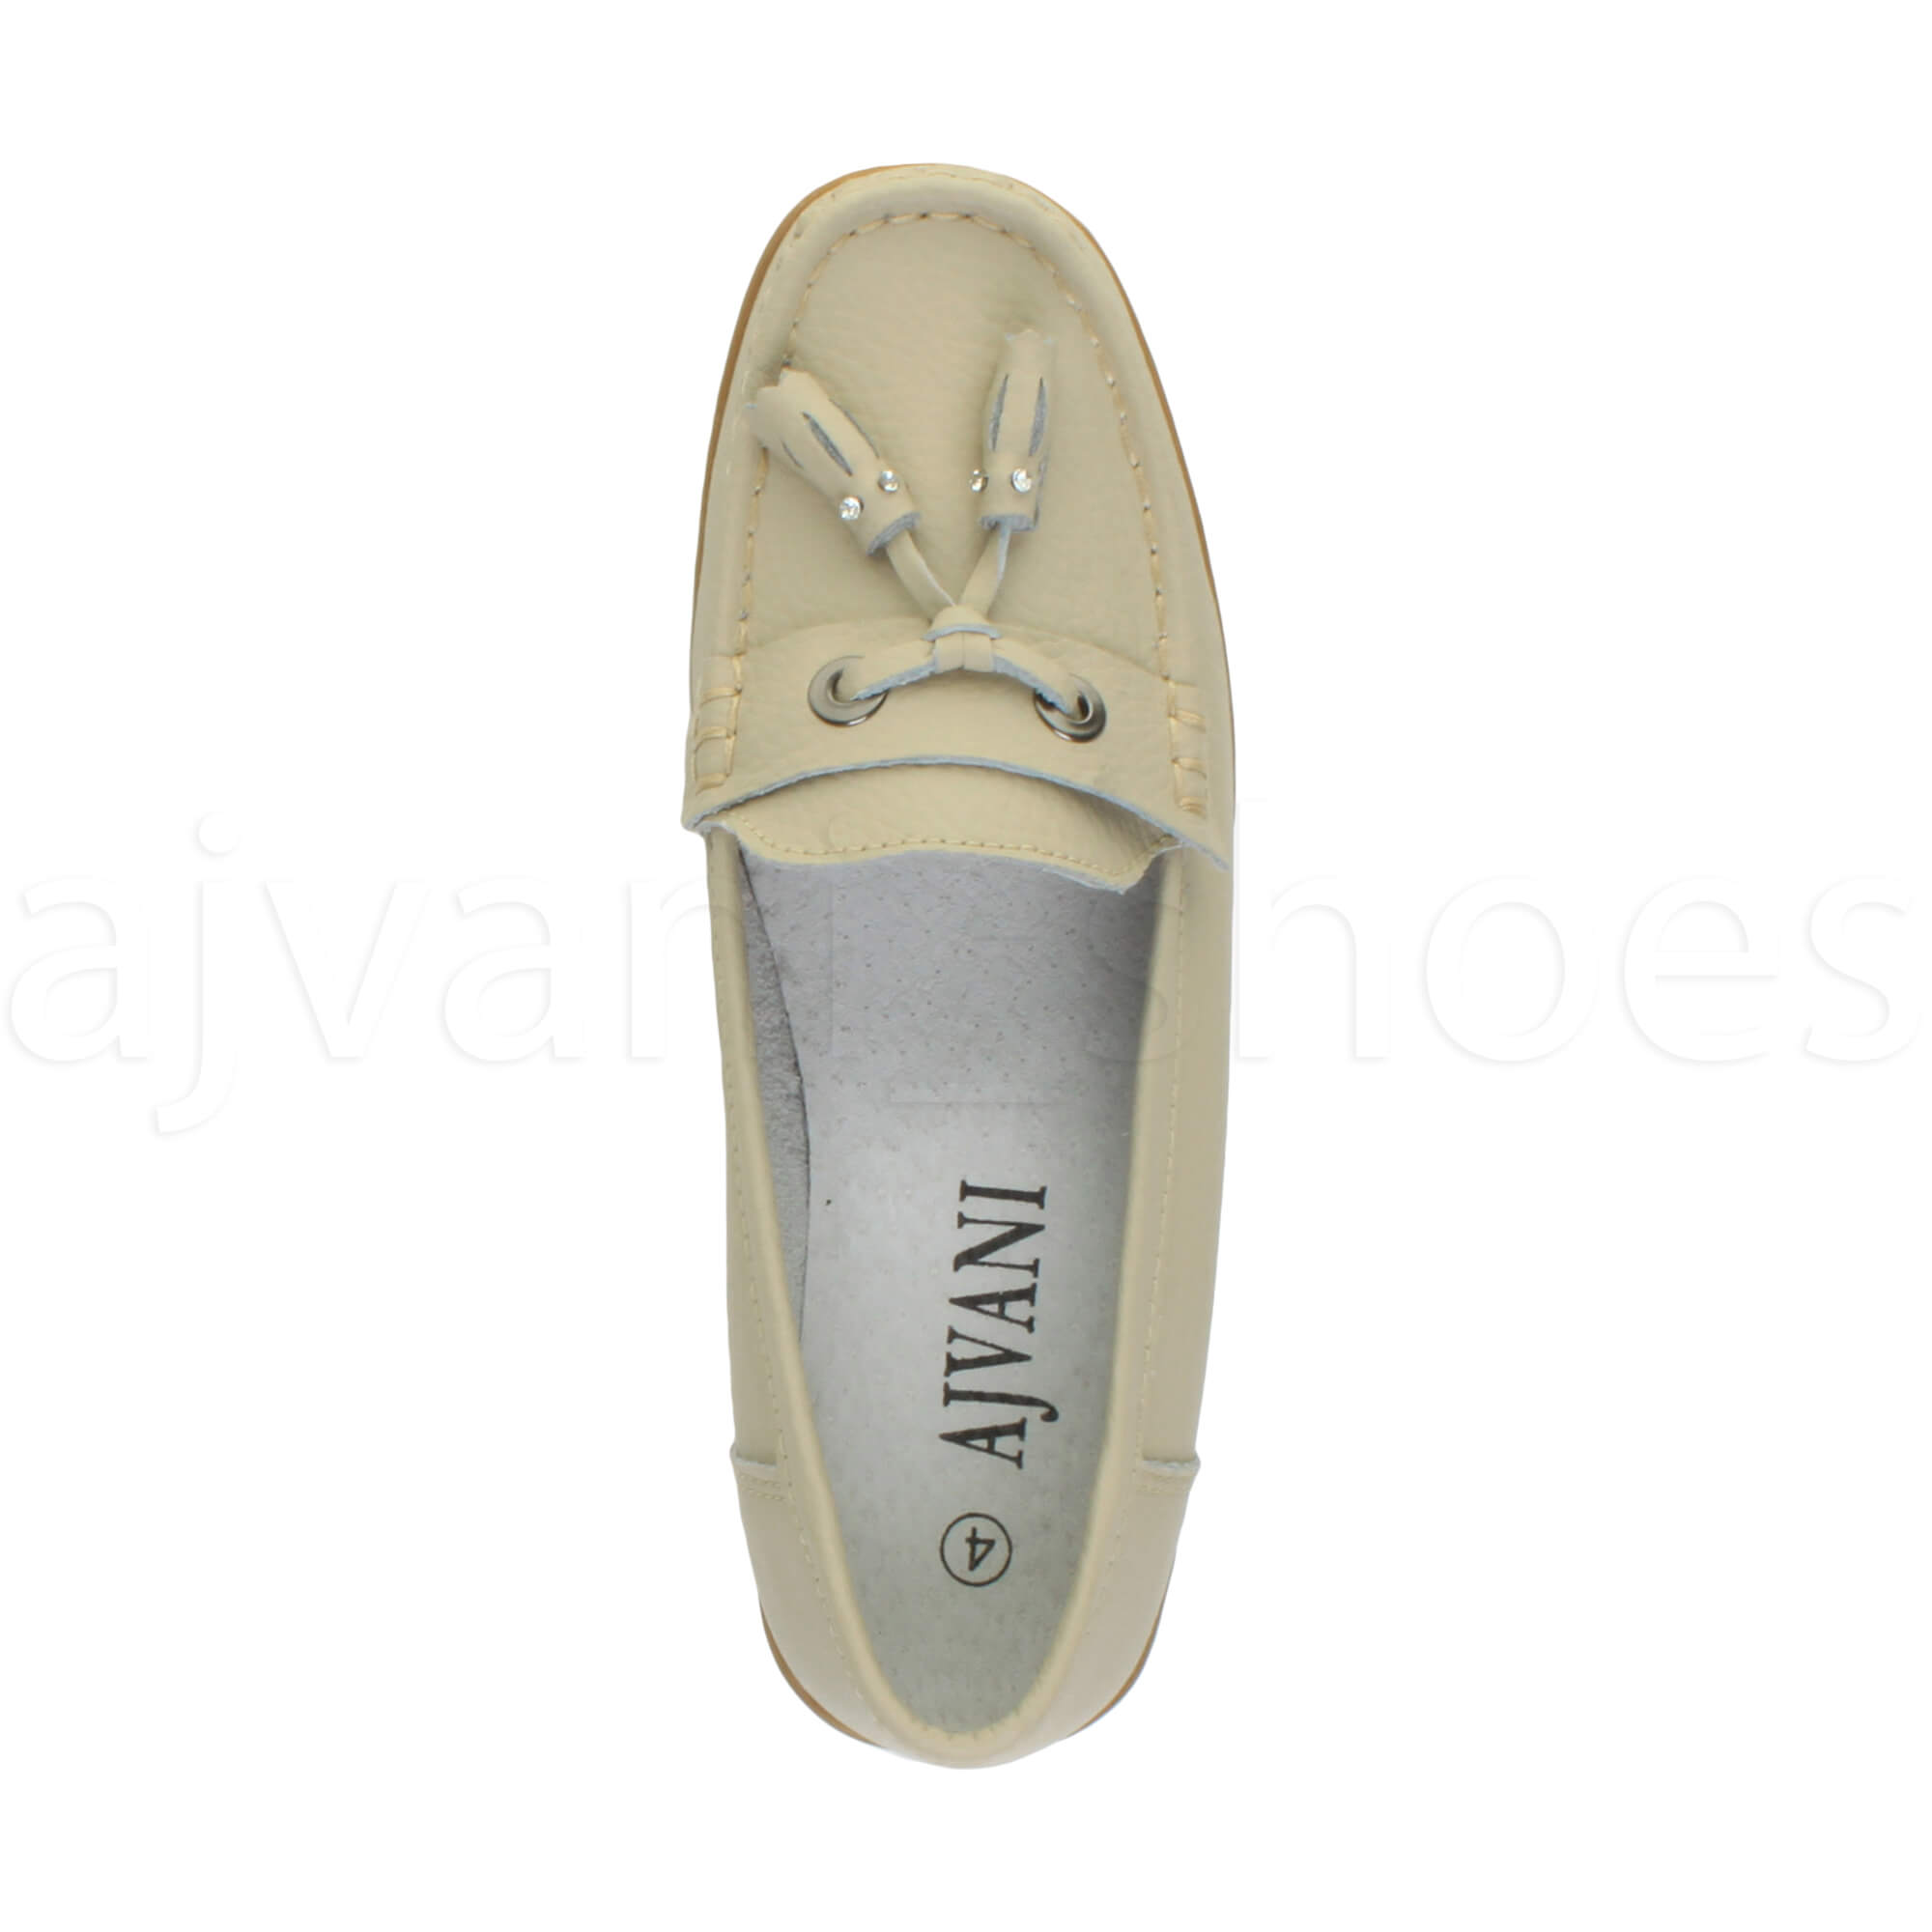 WOMENS-LADIES-LOW-HEEL-WEDGE-LEATHER-TASSEL-LOAFERS-COMFORT-MOCCASINS-SHOES-SIZE thumbnail 8